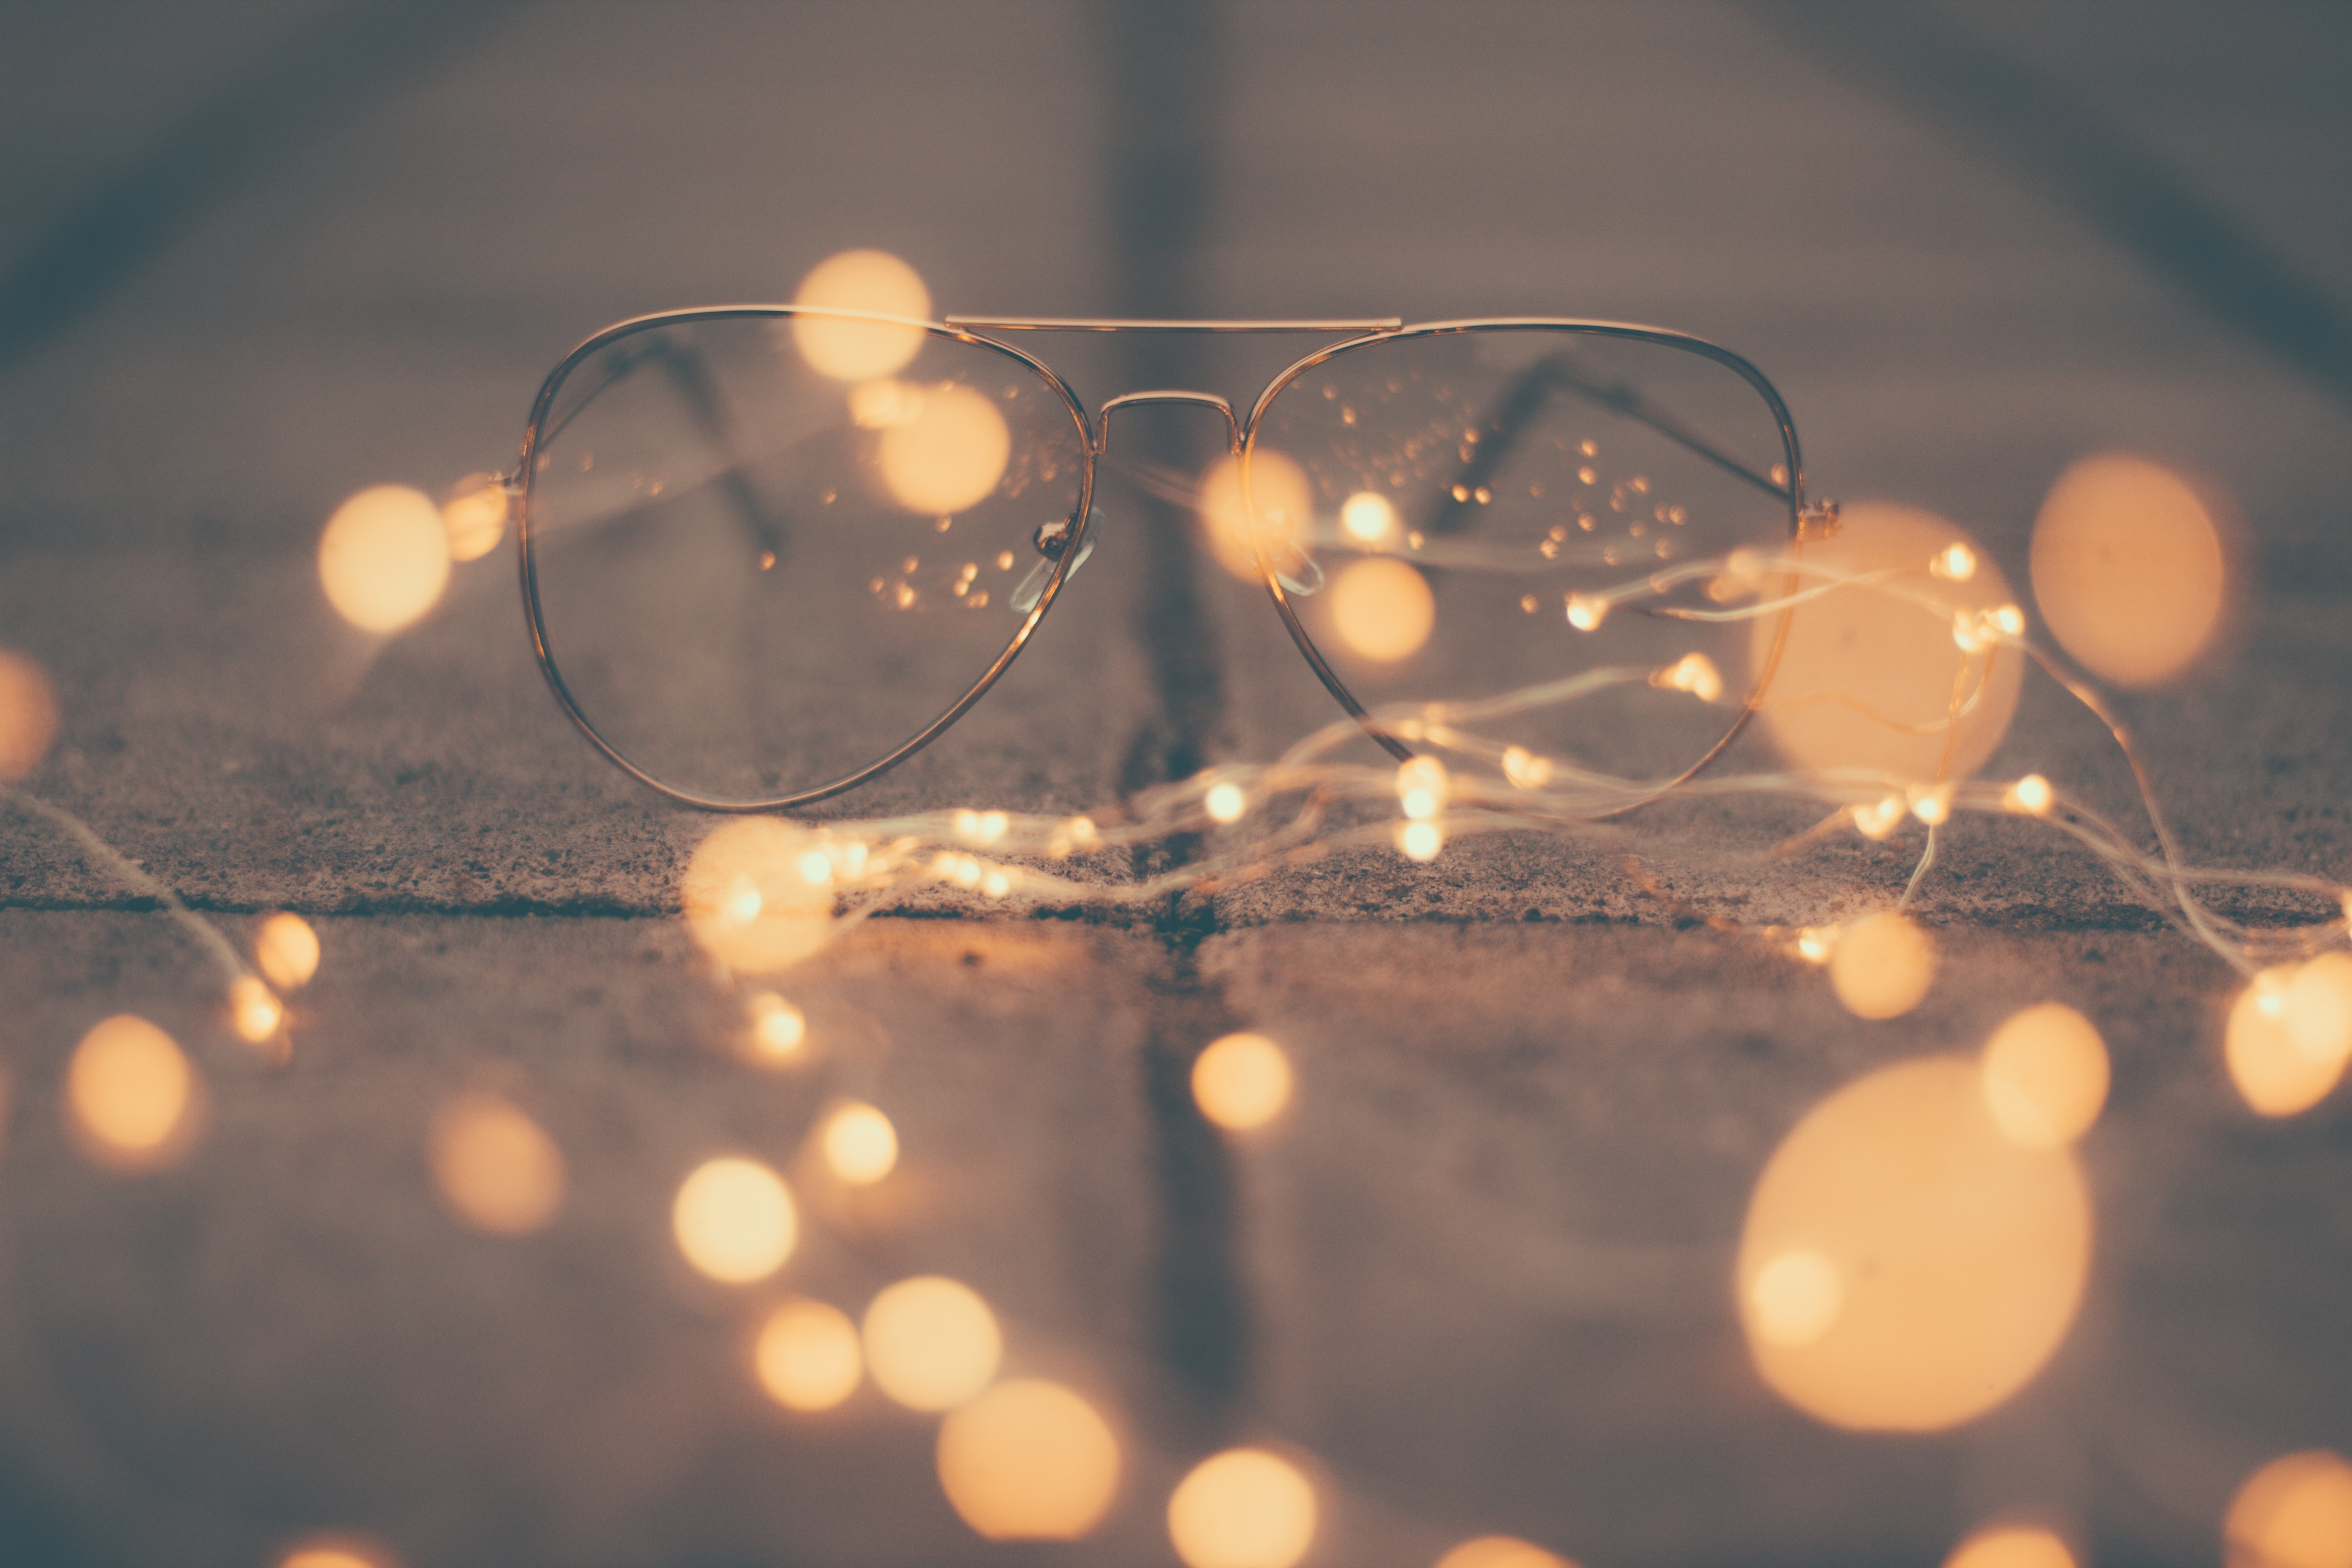 Aviator glasses on the ground in a shadowy light and surrounded by a string of lights.